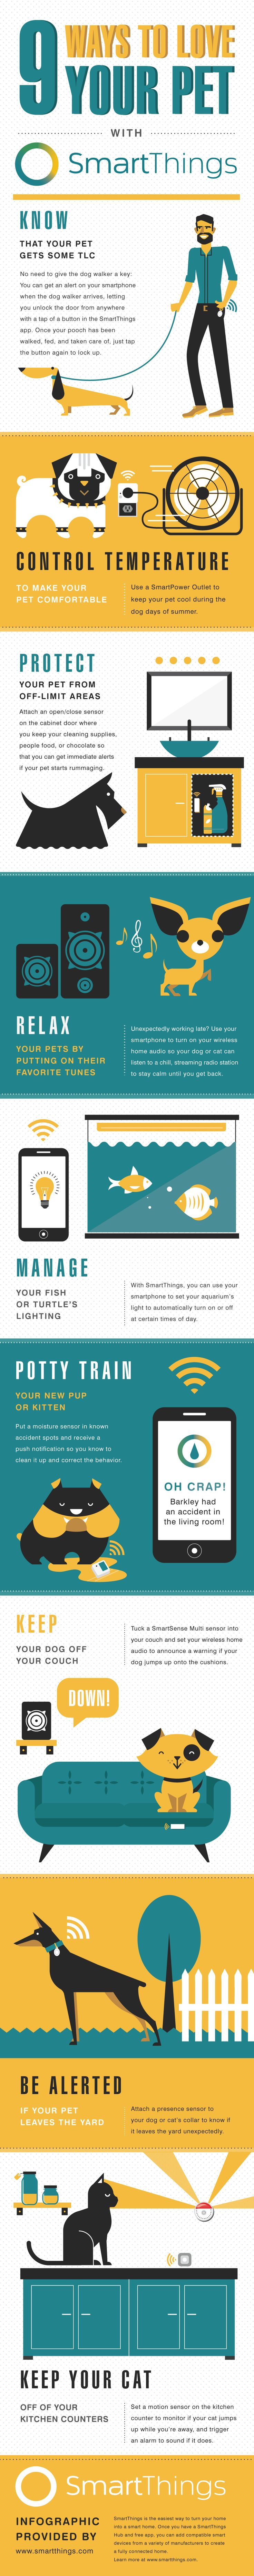 Here are 9 ways that SmartThings can help your pets lead healthier, happier lives while also promoting good behavior. Ready to get started? Visit Shop.SmartThings.com to create a safer, smarter...